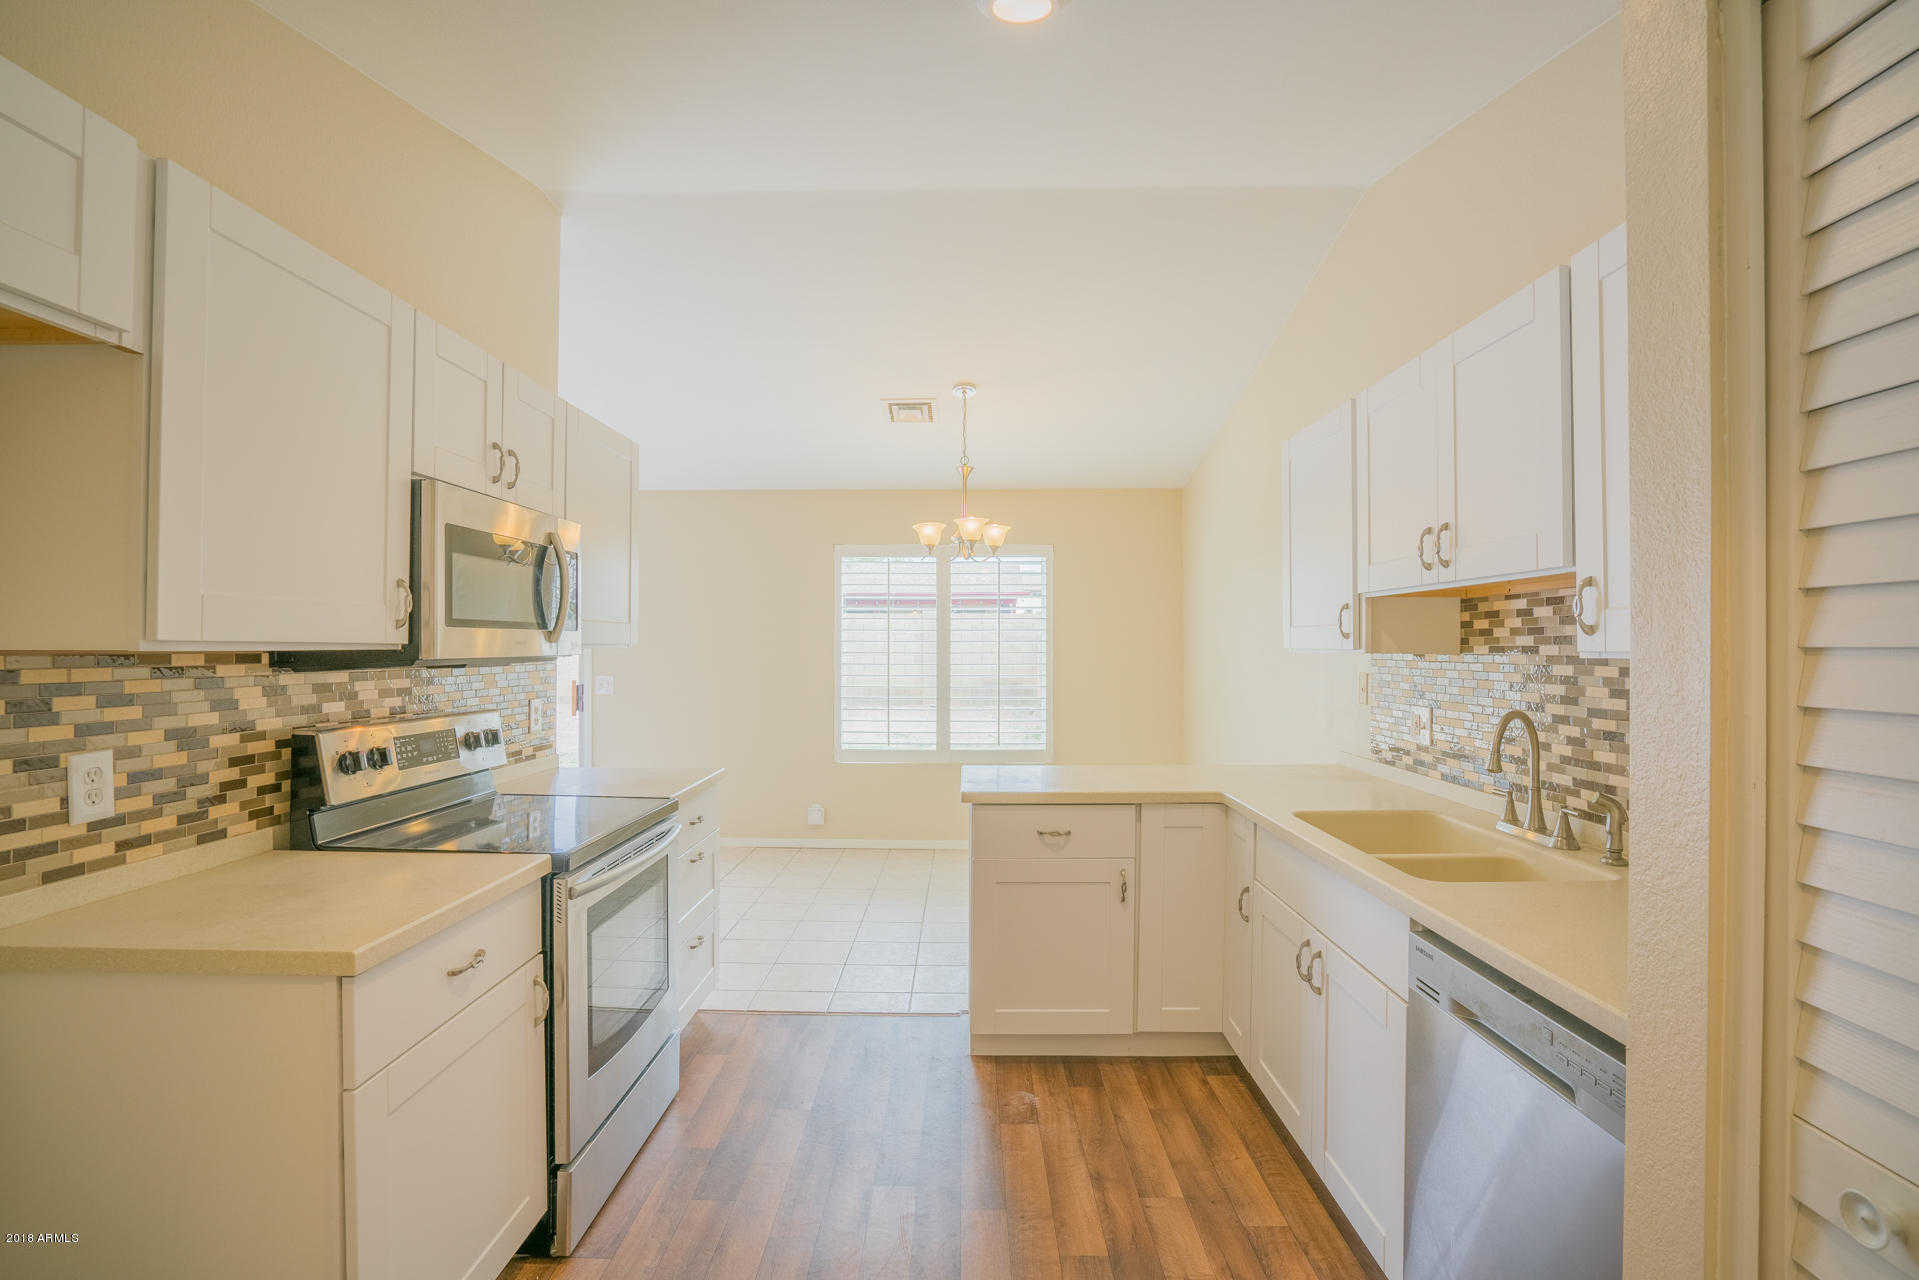 $202,000 - 2Br/2Ba - Home for Sale in Chaparral Ranch Patio Homes 3 172-275 A-c Pvt Sts, Glendale